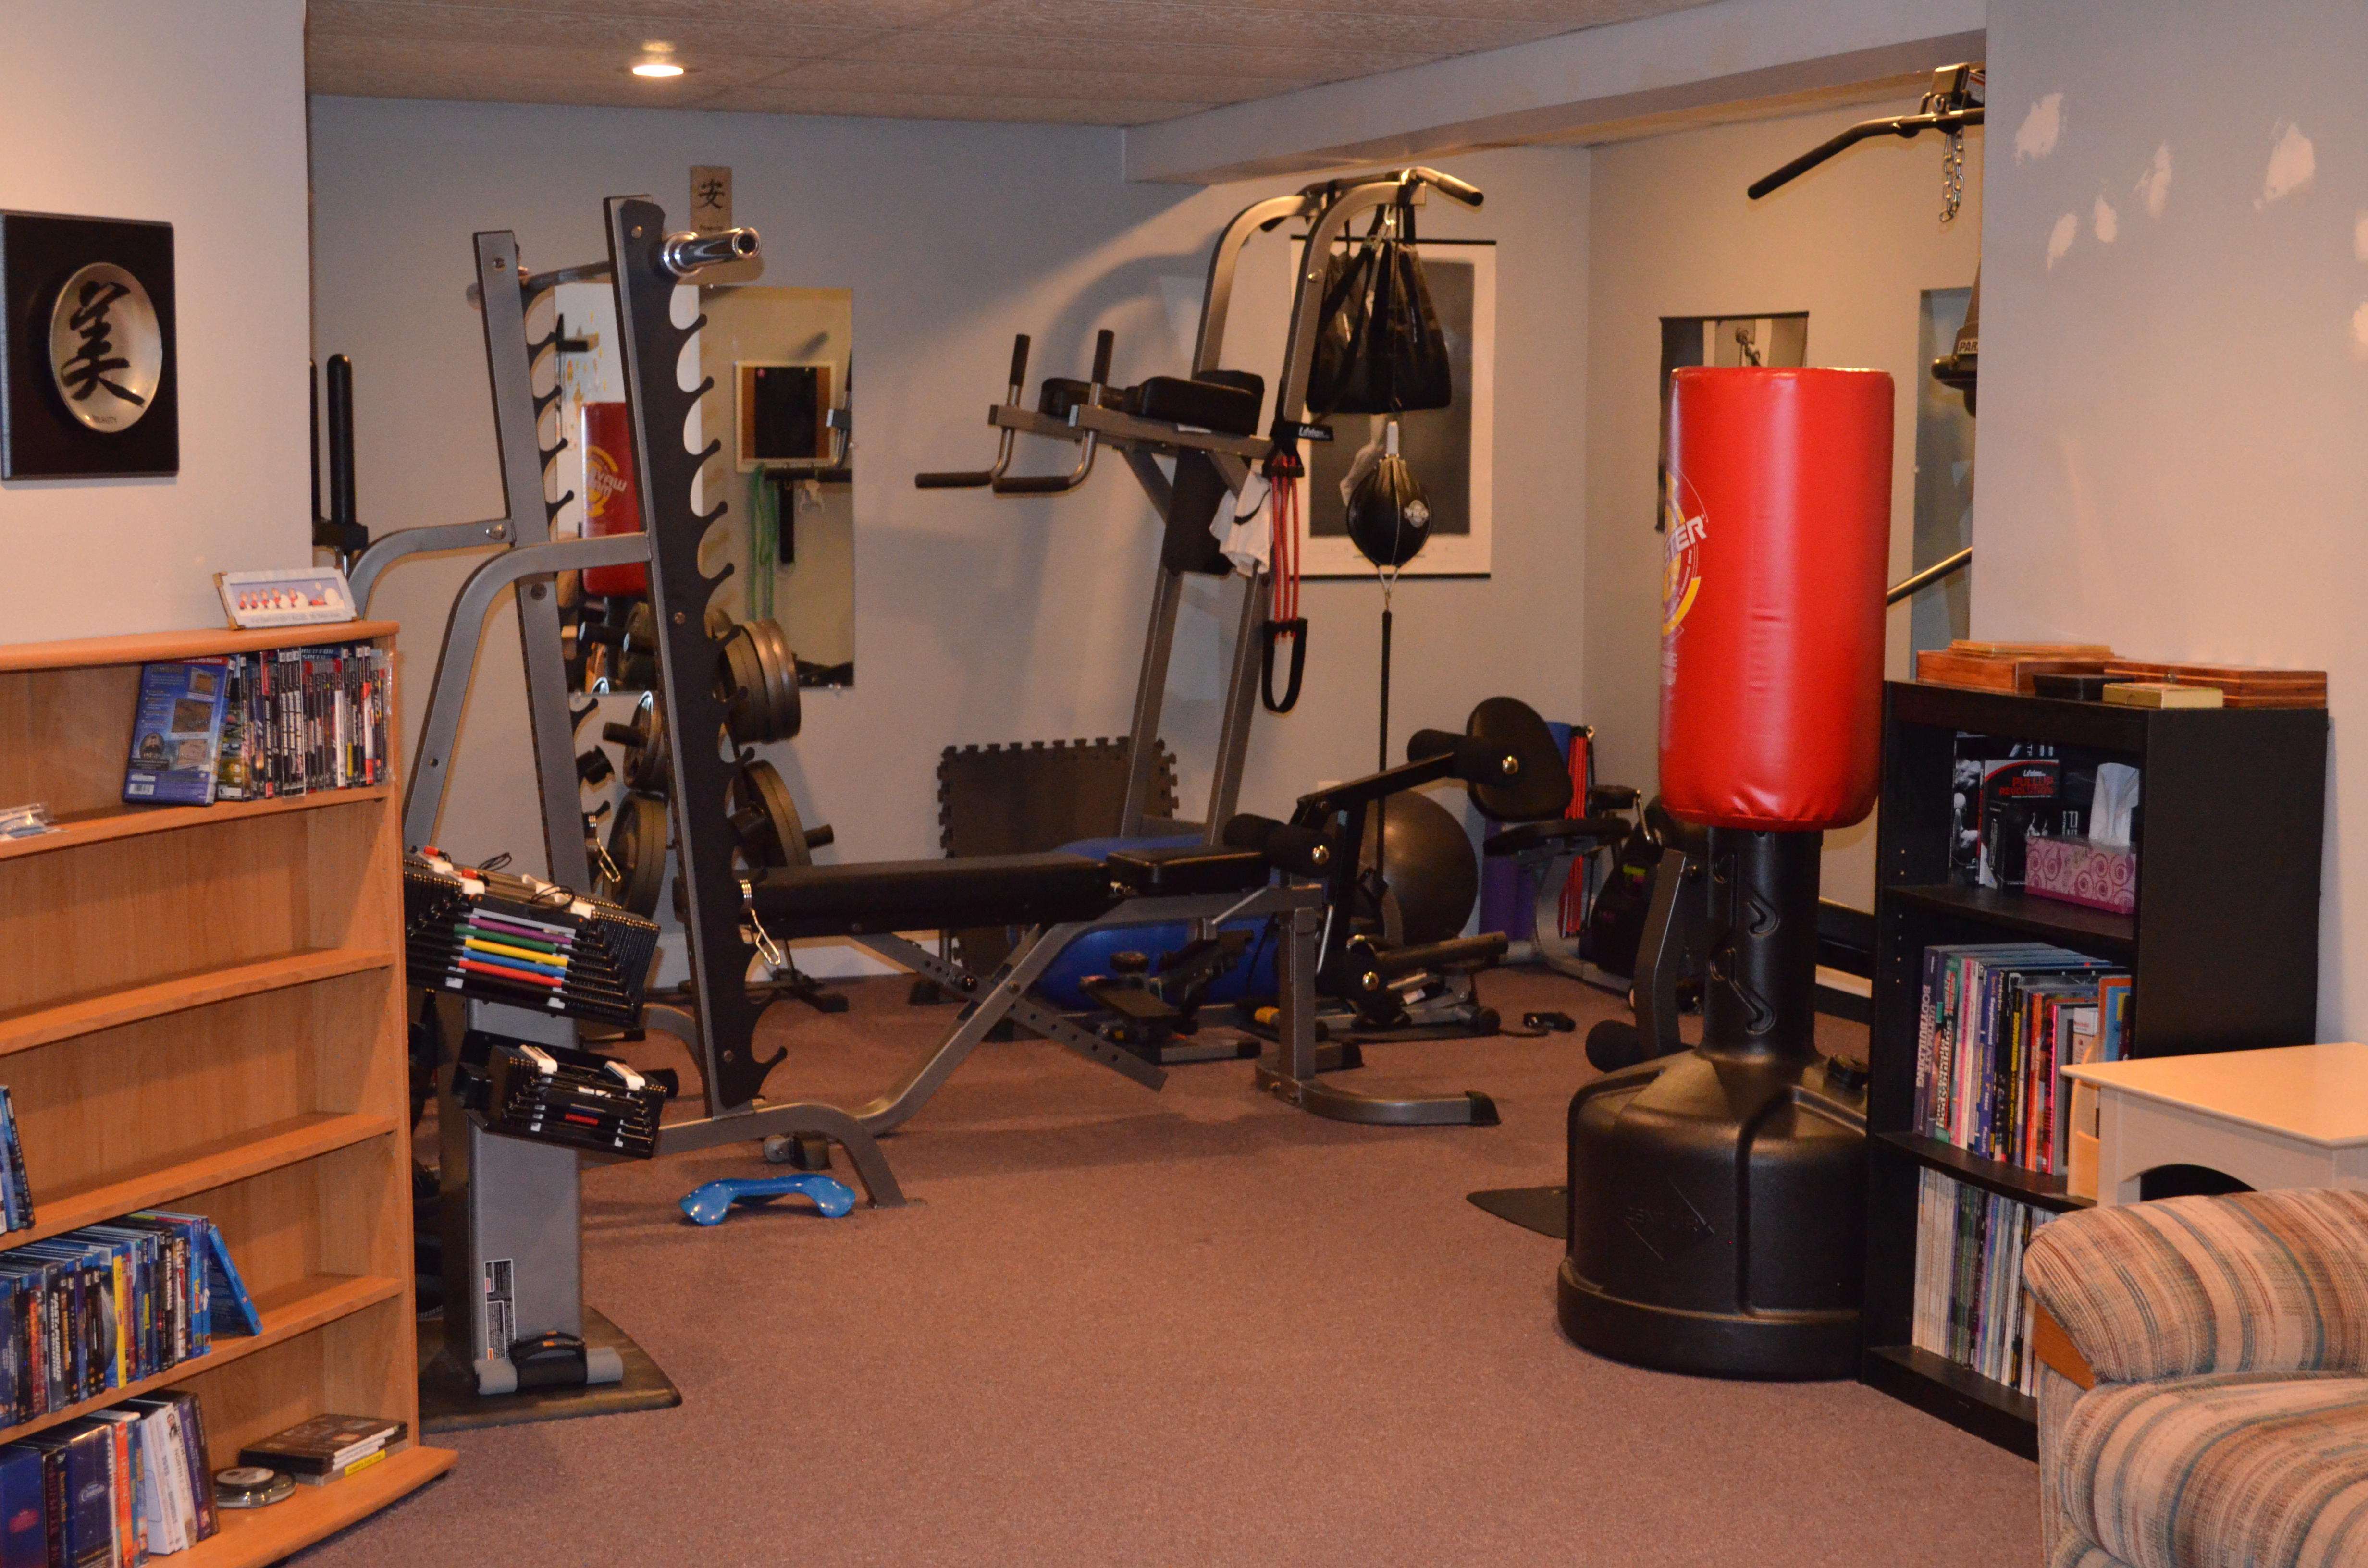 Turning to look into the now usable gym area again.